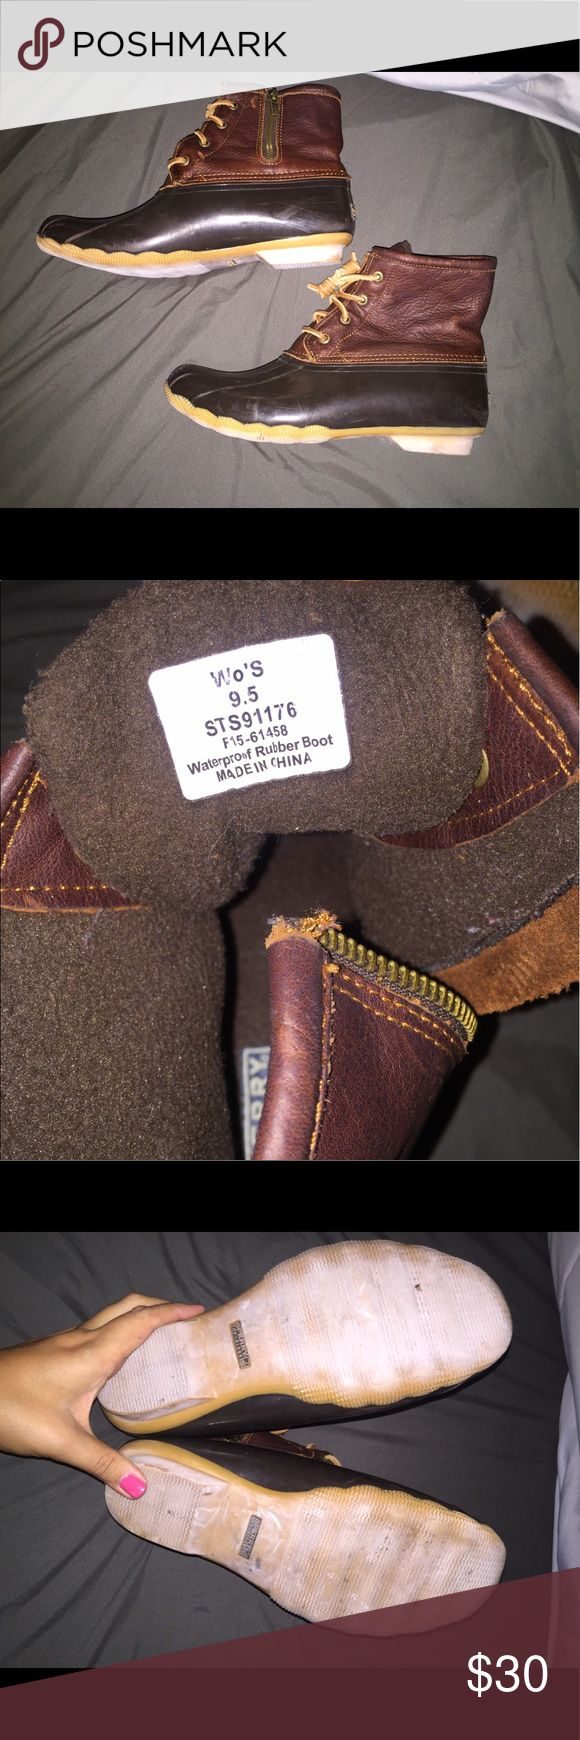 """Sperry """"Bean Boots"""" Size 9.5 Rainboots worn a few times in good condition Sperry Shoes Winter & Rain Boots"""